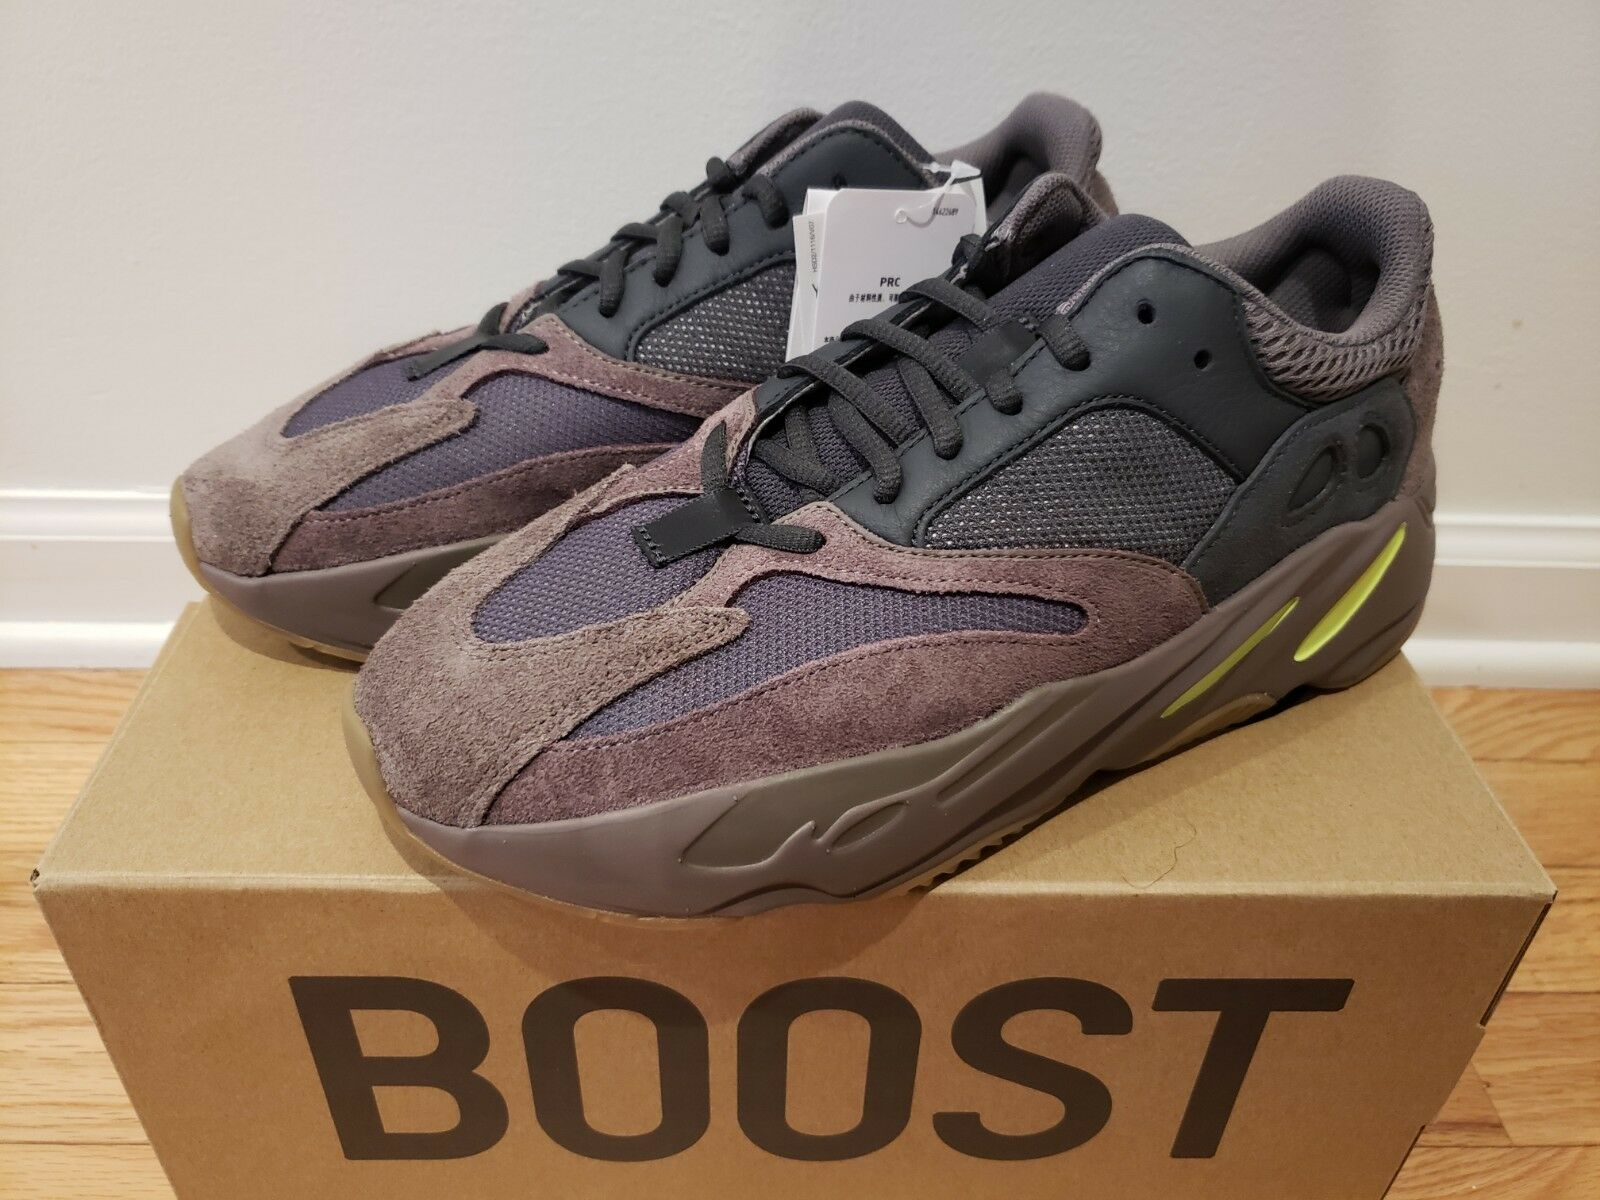 Adidas Yeezy Boost 700 'Mauve' Mens Sneakers ‑ Size 9.5